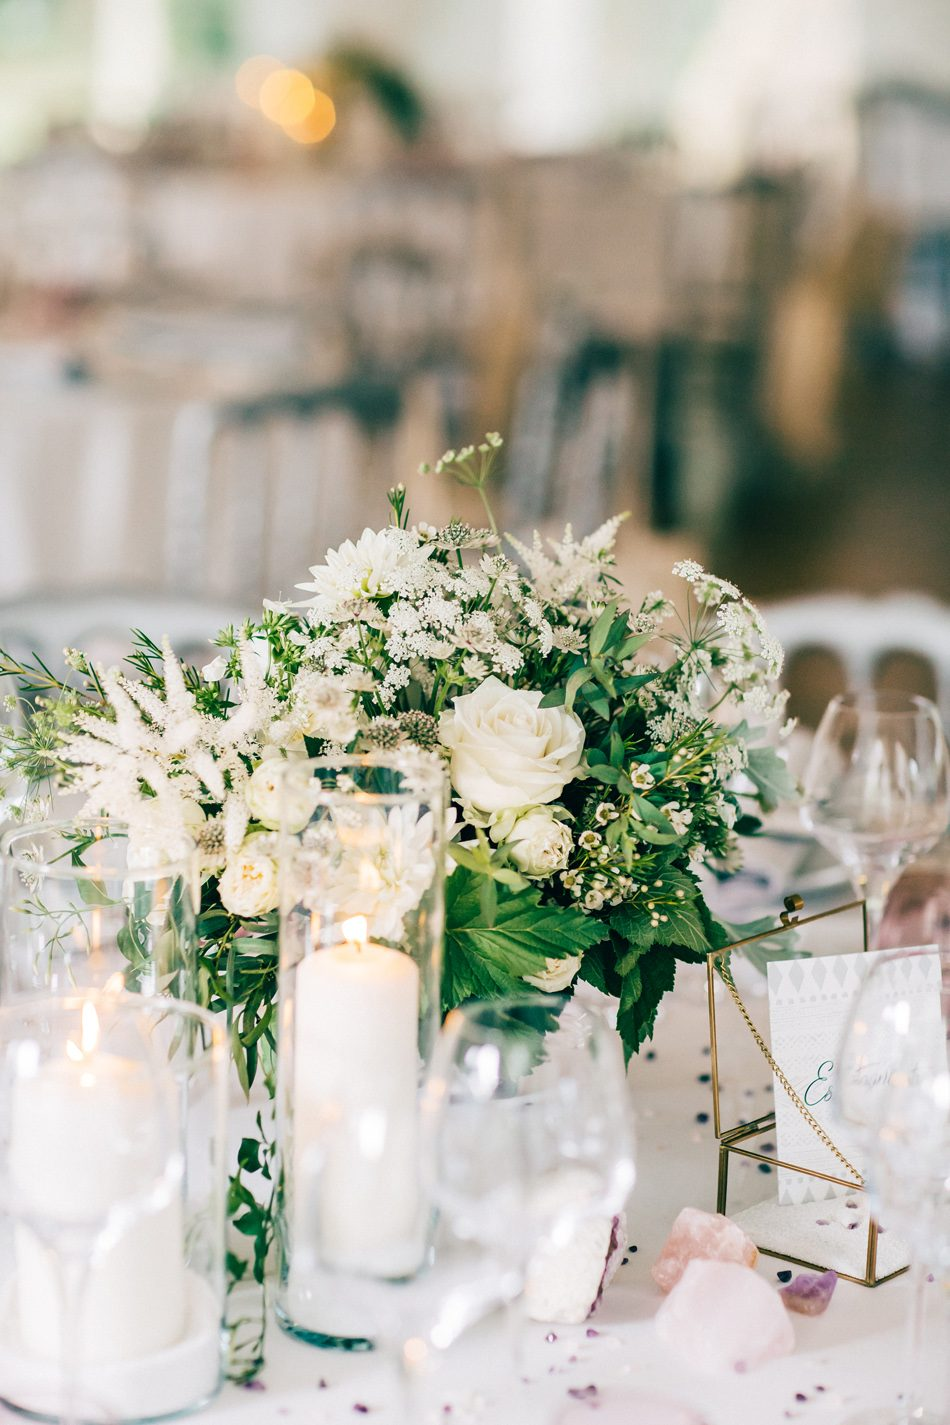 ruban collectif photographe landes france pays basque papeterie mariage fleuriste aquitaine wedding photography white flowers decoration mariage